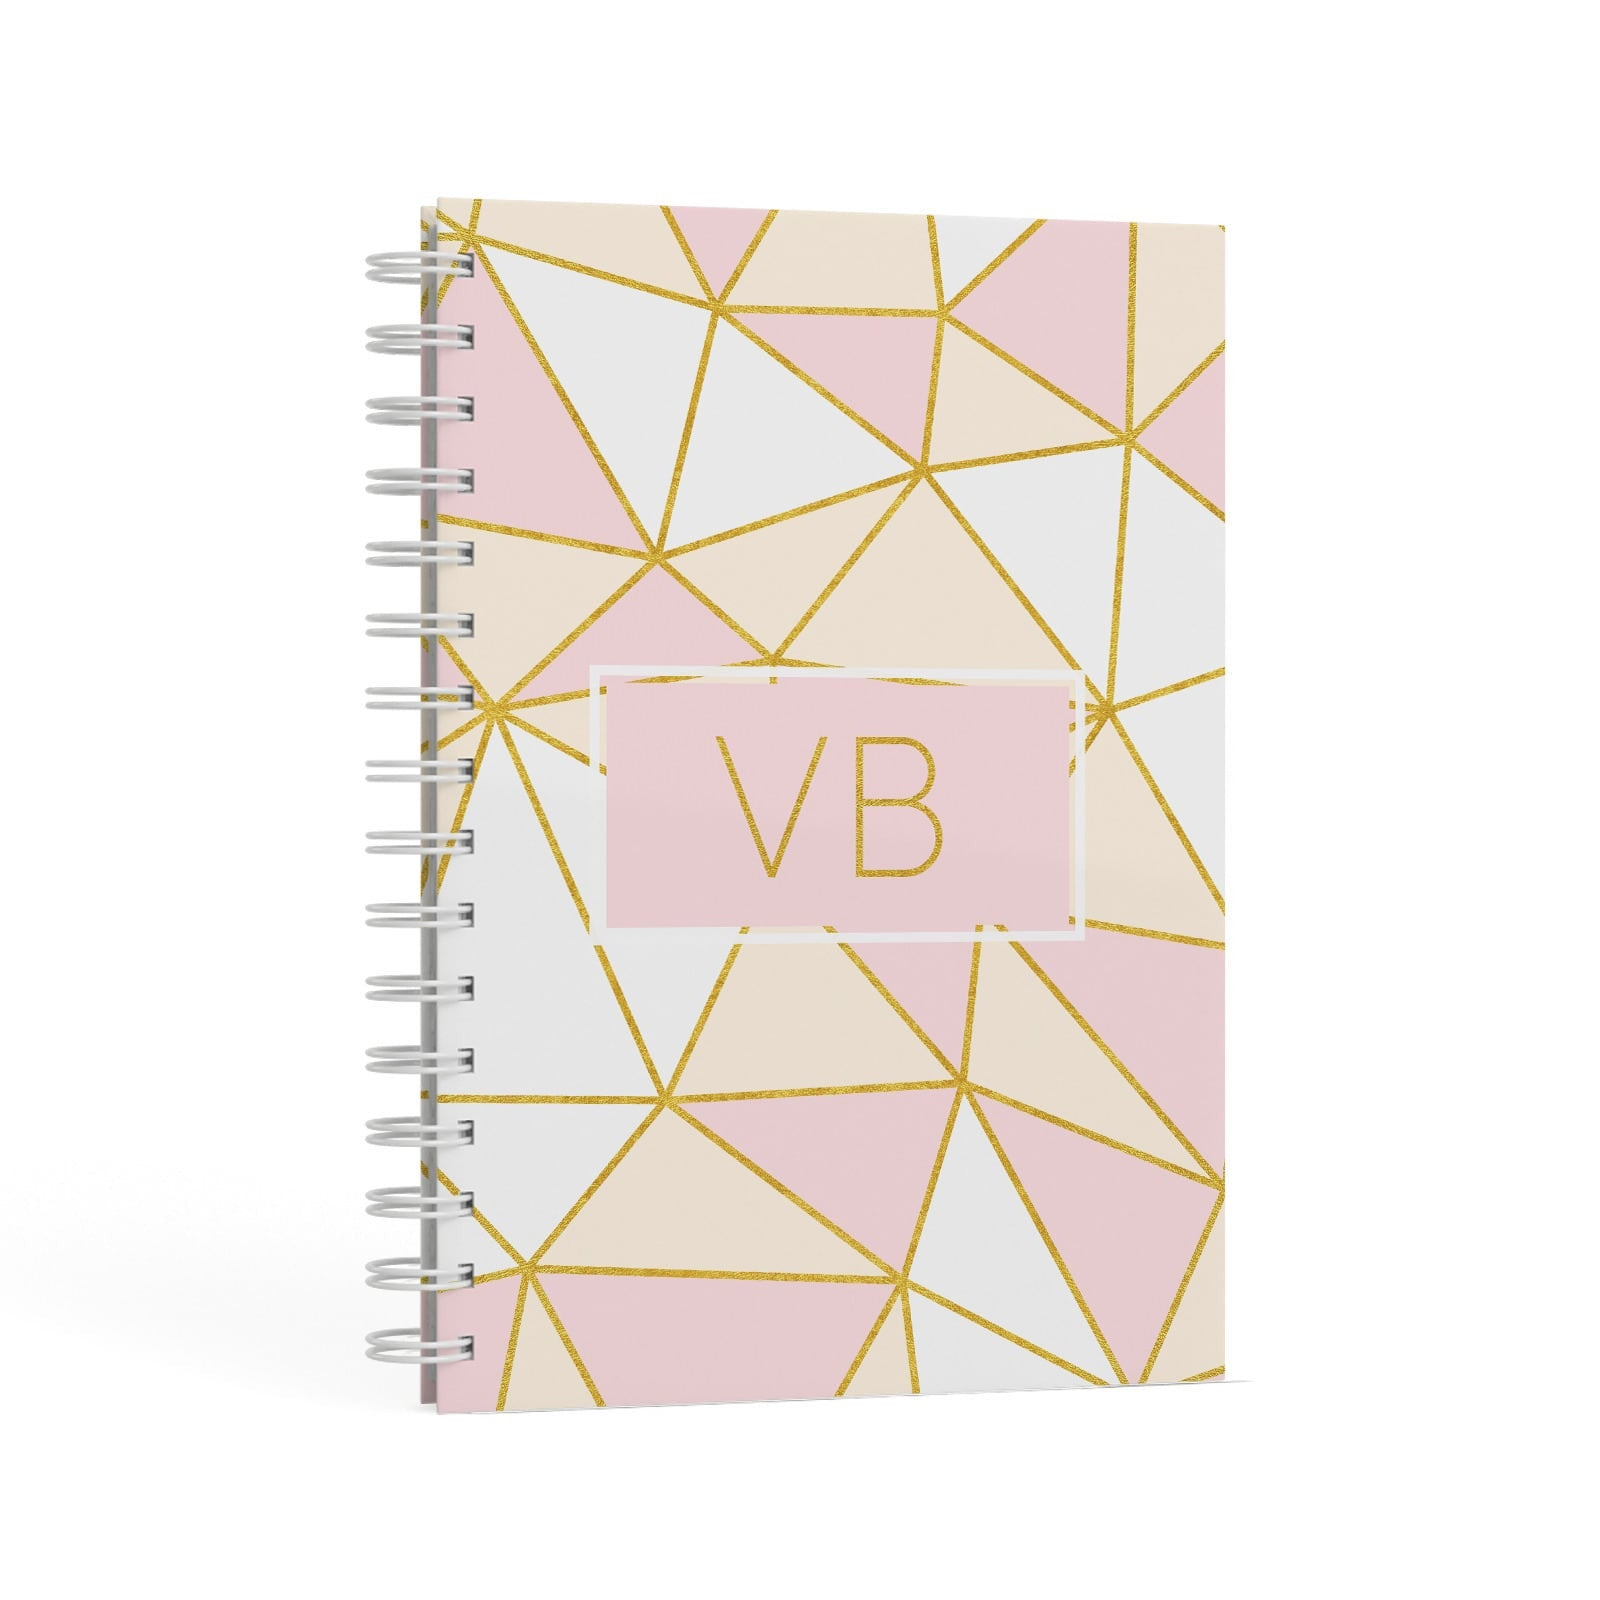 Personalised Gold Initials Geometric A5 Hardcover Notebook Second Side View